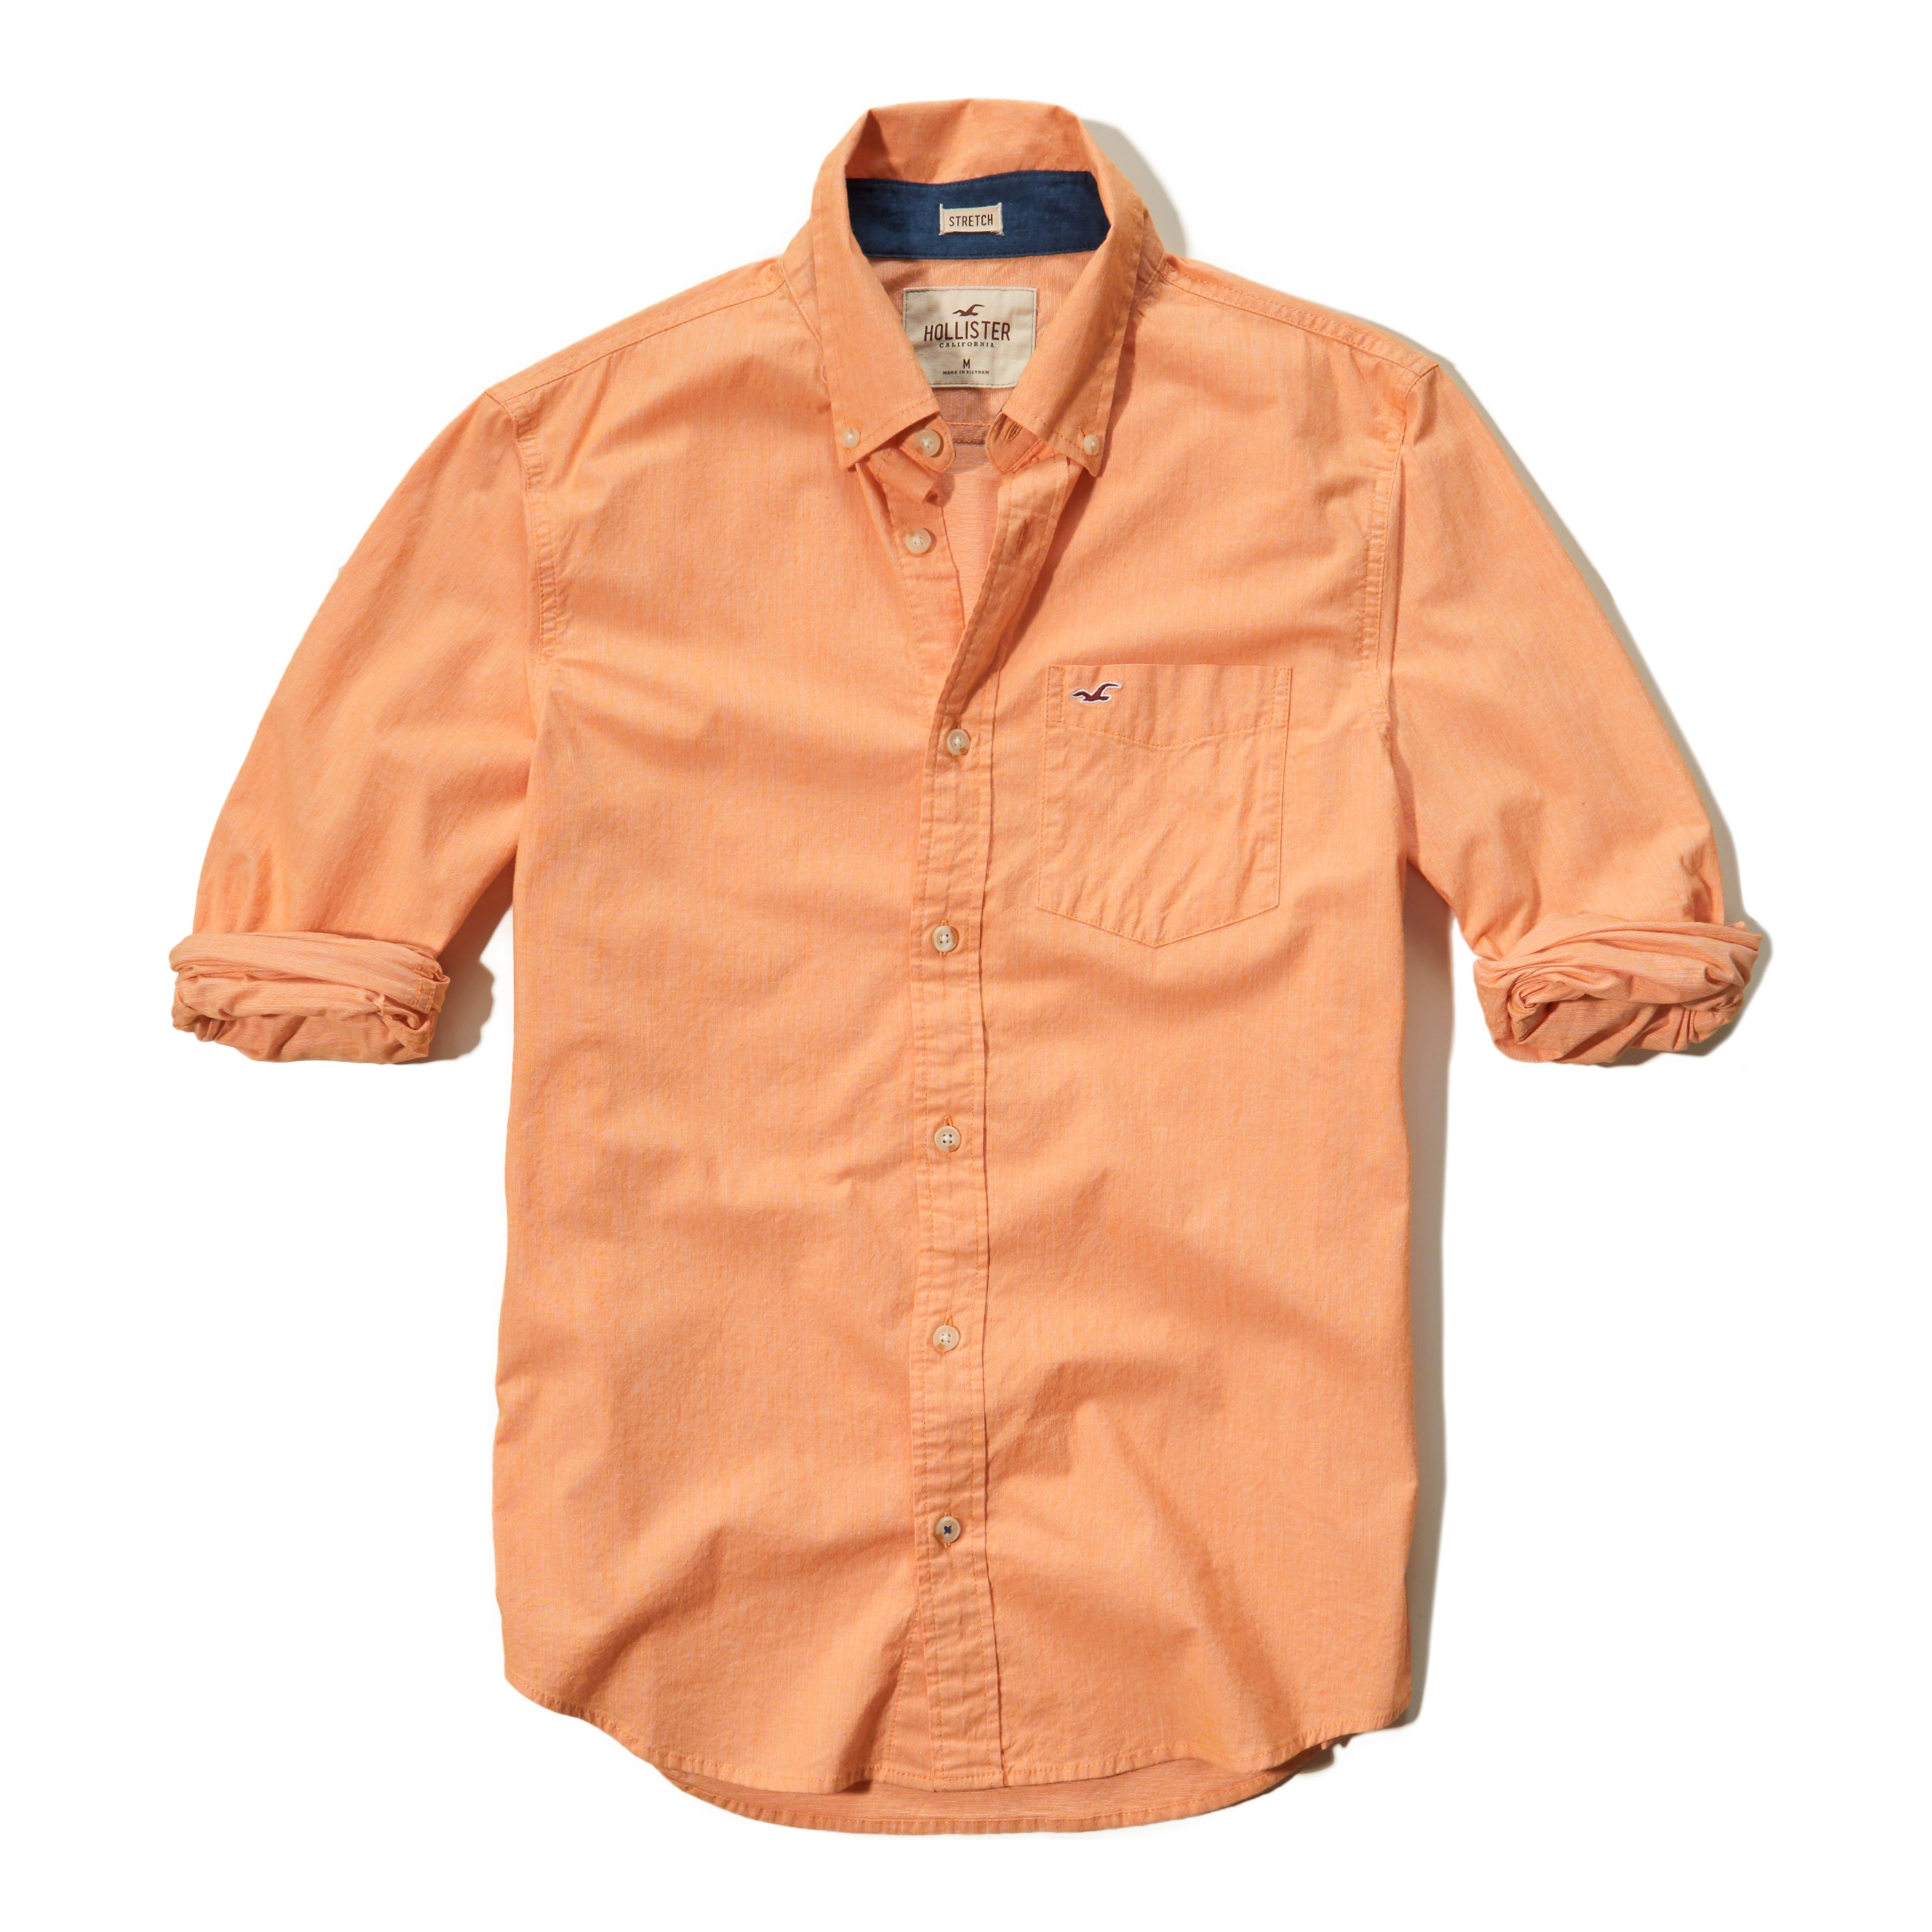 Find great deals on eBay for hollister jackets. Shop with confidence.